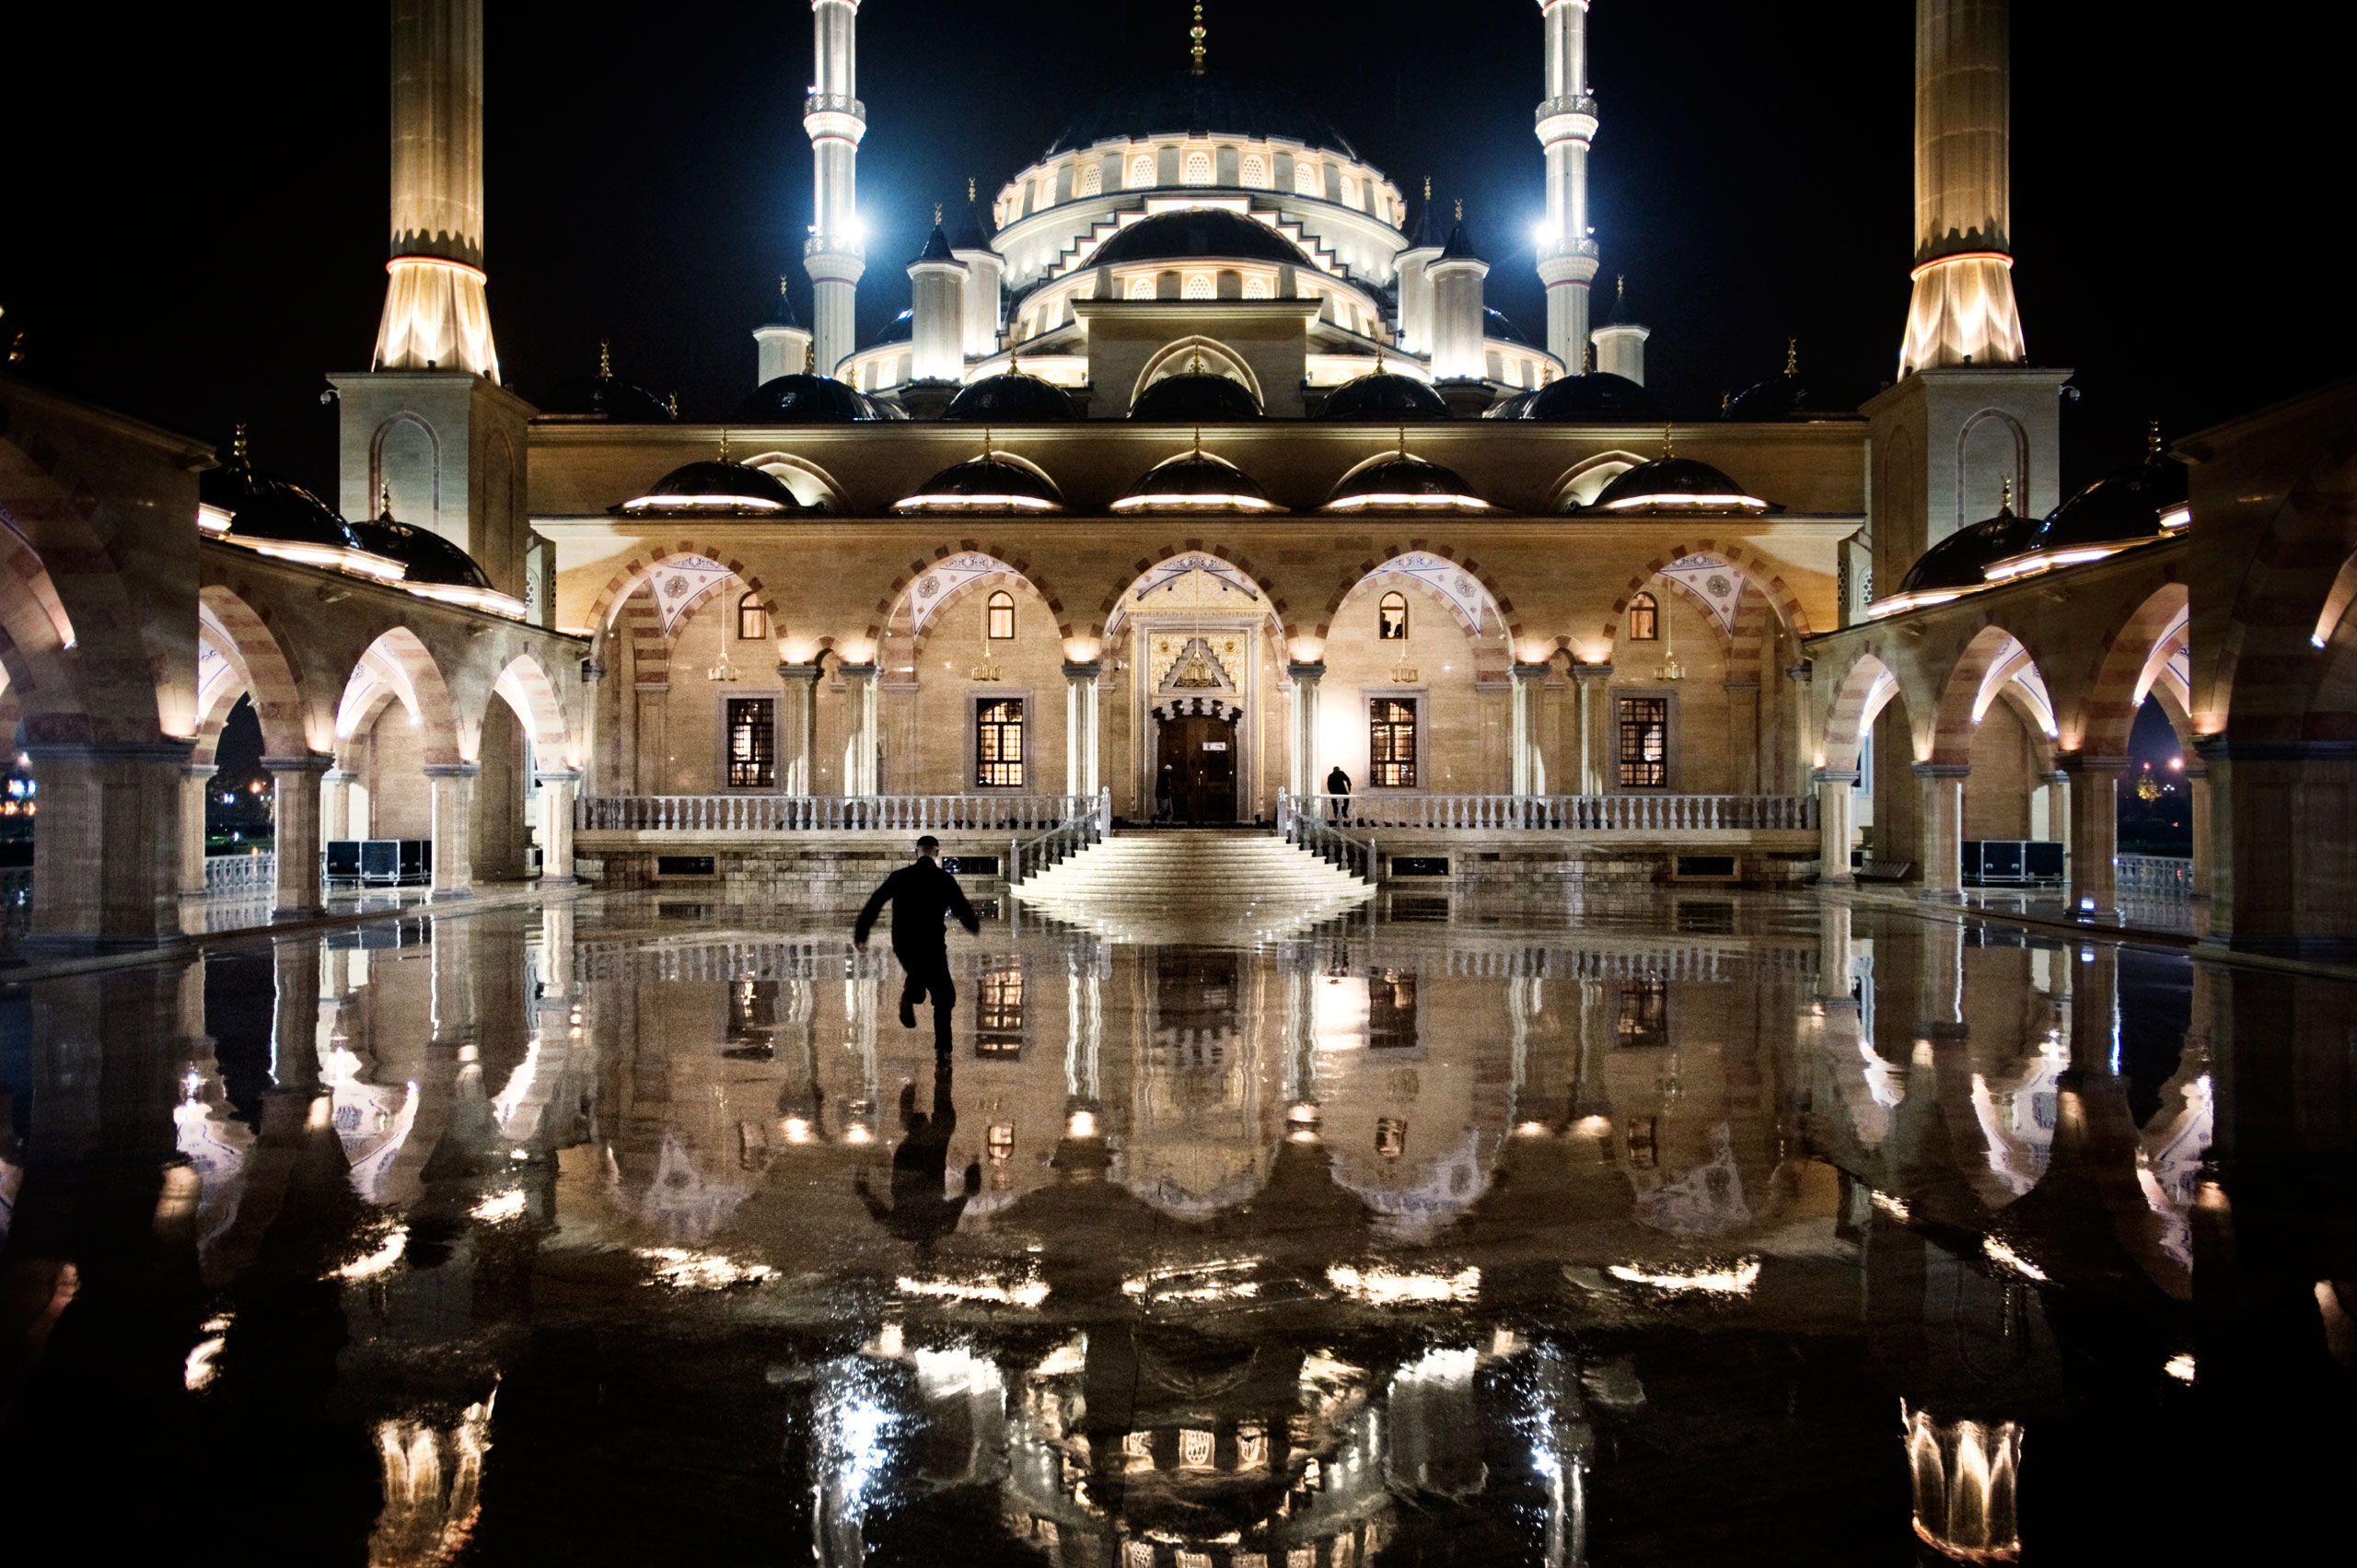 One of the biggest mosques in Europe, known as the Heart of Chechnya, it is dedicated to the memory of the late Chechen leader, Akhmad Kadyrov, father of Ramzan Kadyrov, Chechnya's current ruler, Grozny, Chechnya, October 2009.